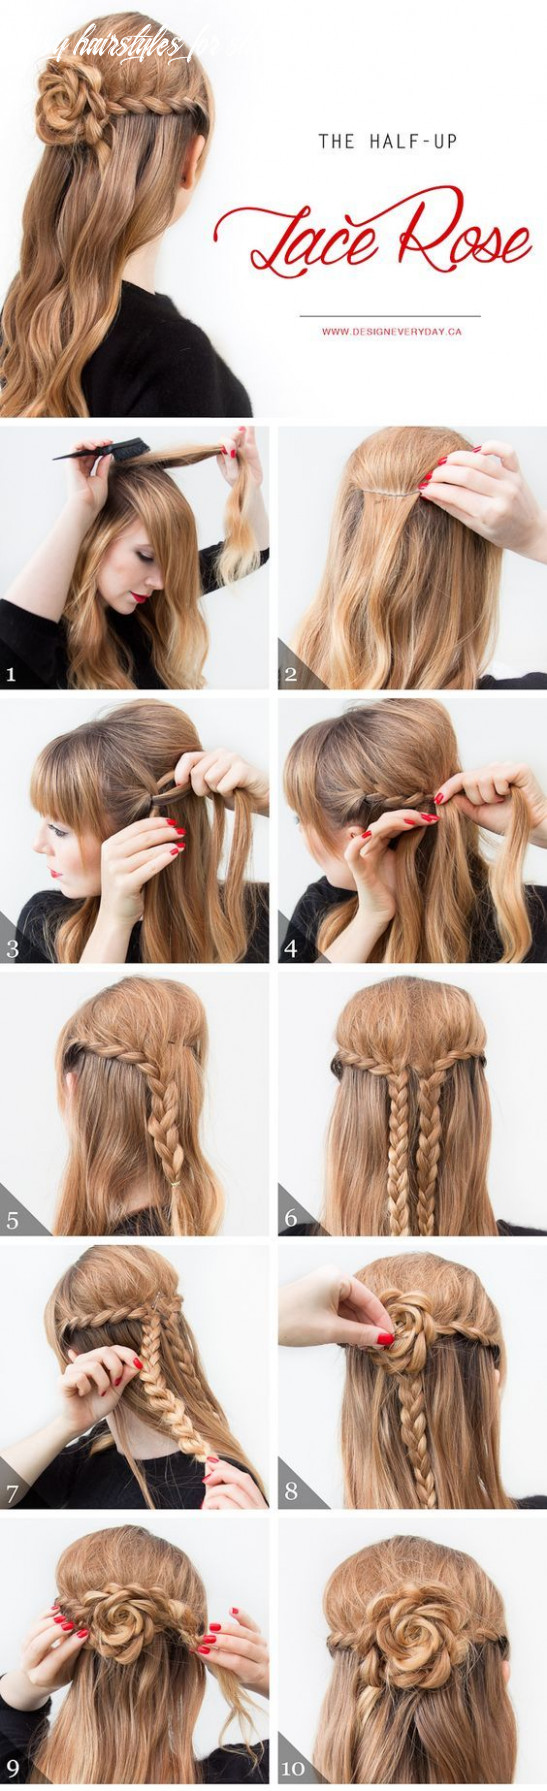 11 Easy Step by Step Hair Tutorials for Long, Medium,Short Hair ...